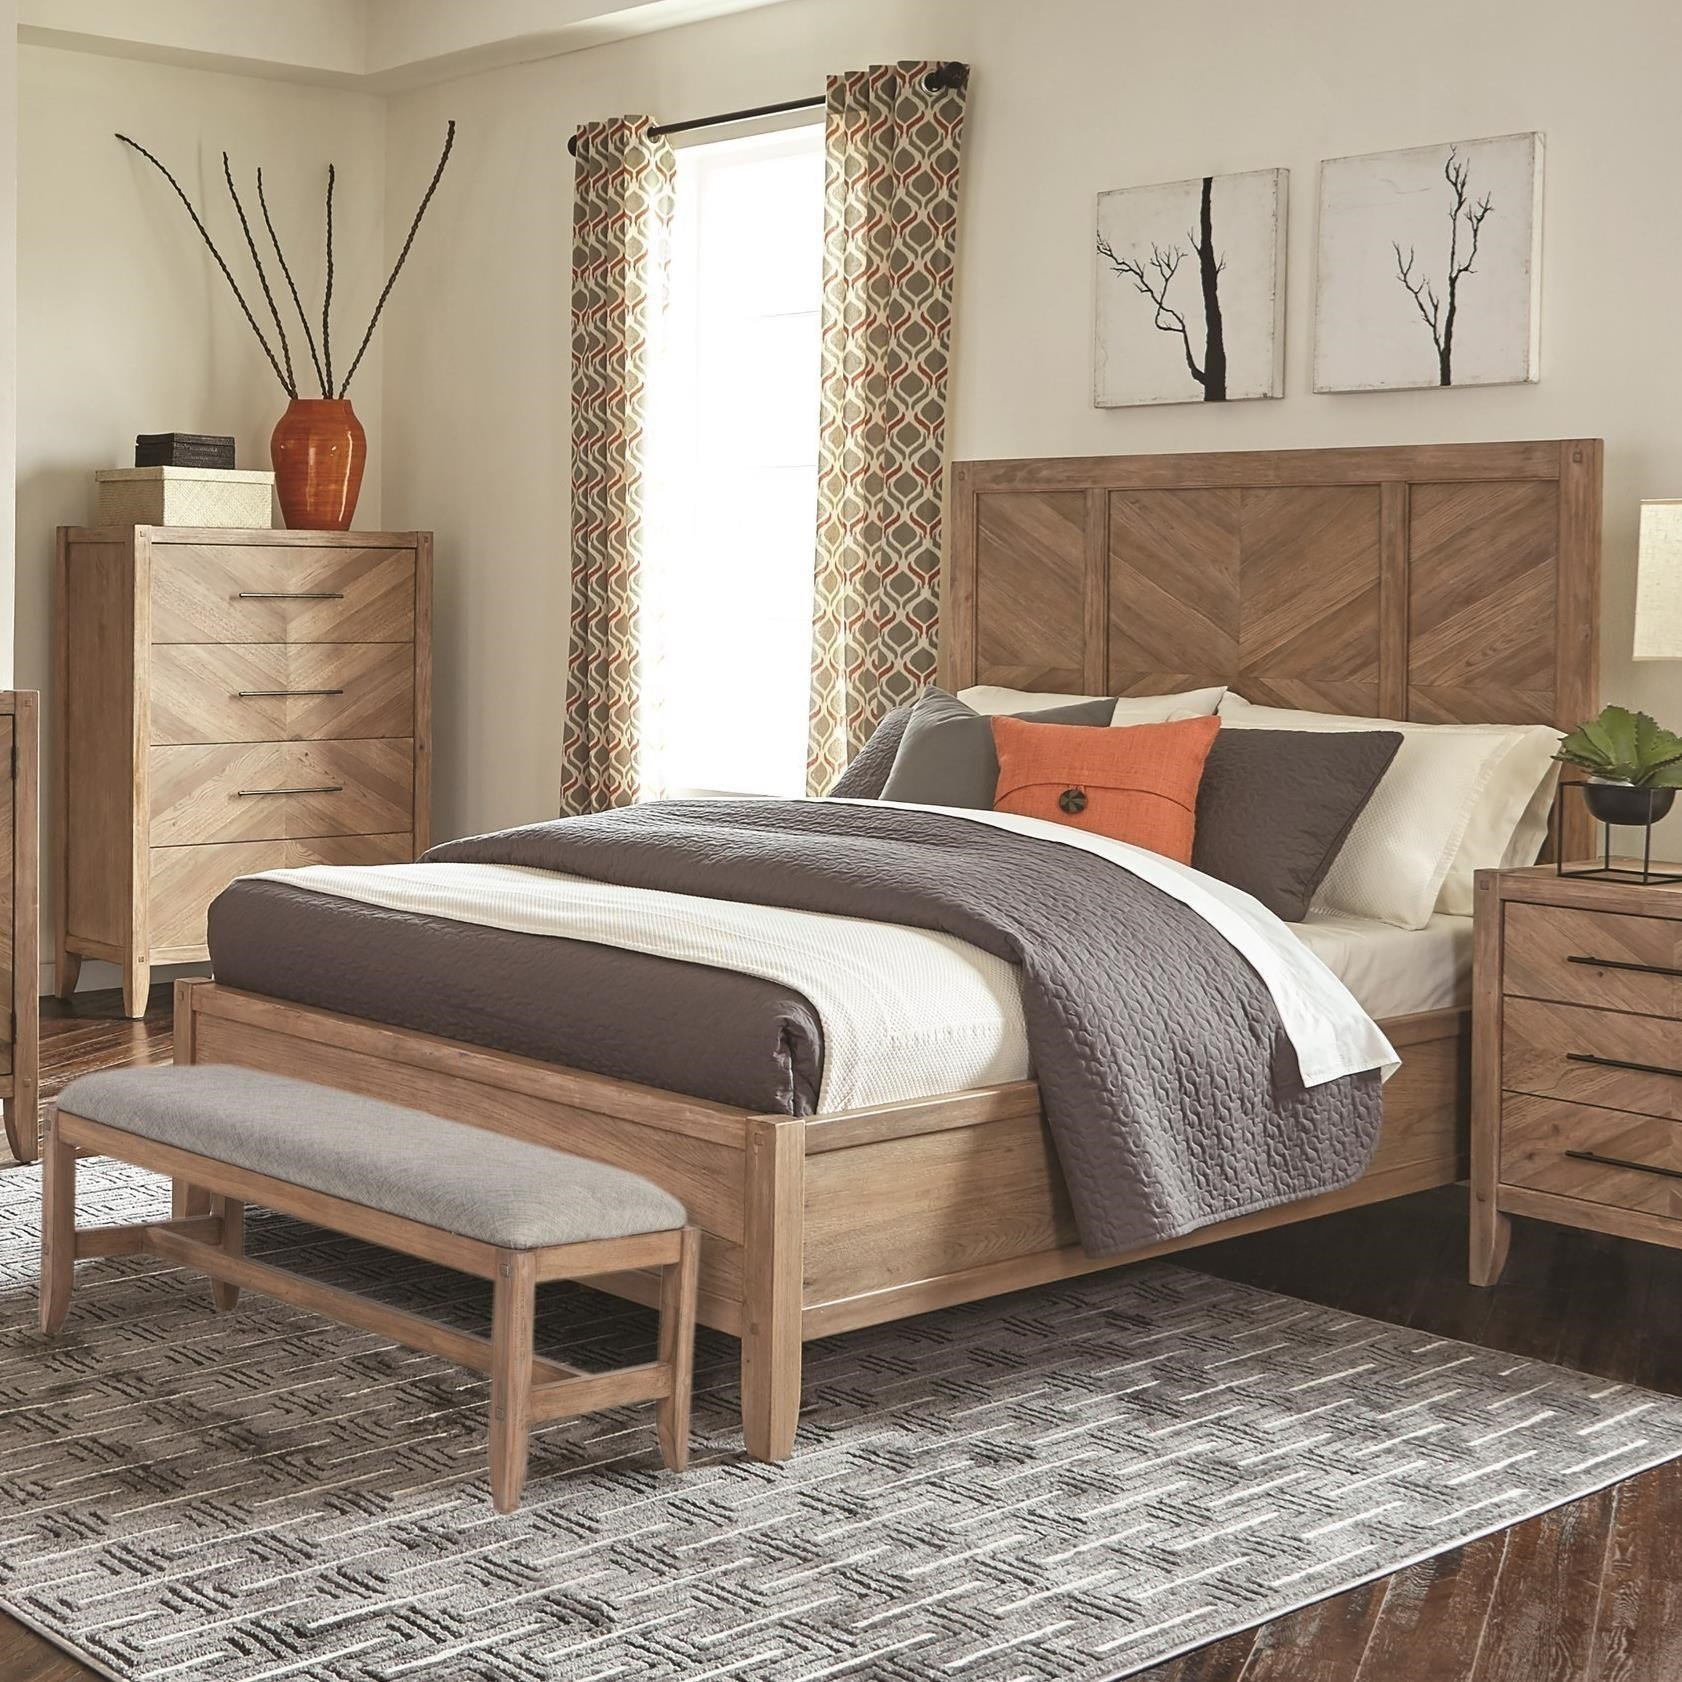 Best Cheap Bedroom Furniture Auburn Www Indiepedia Org With Pictures